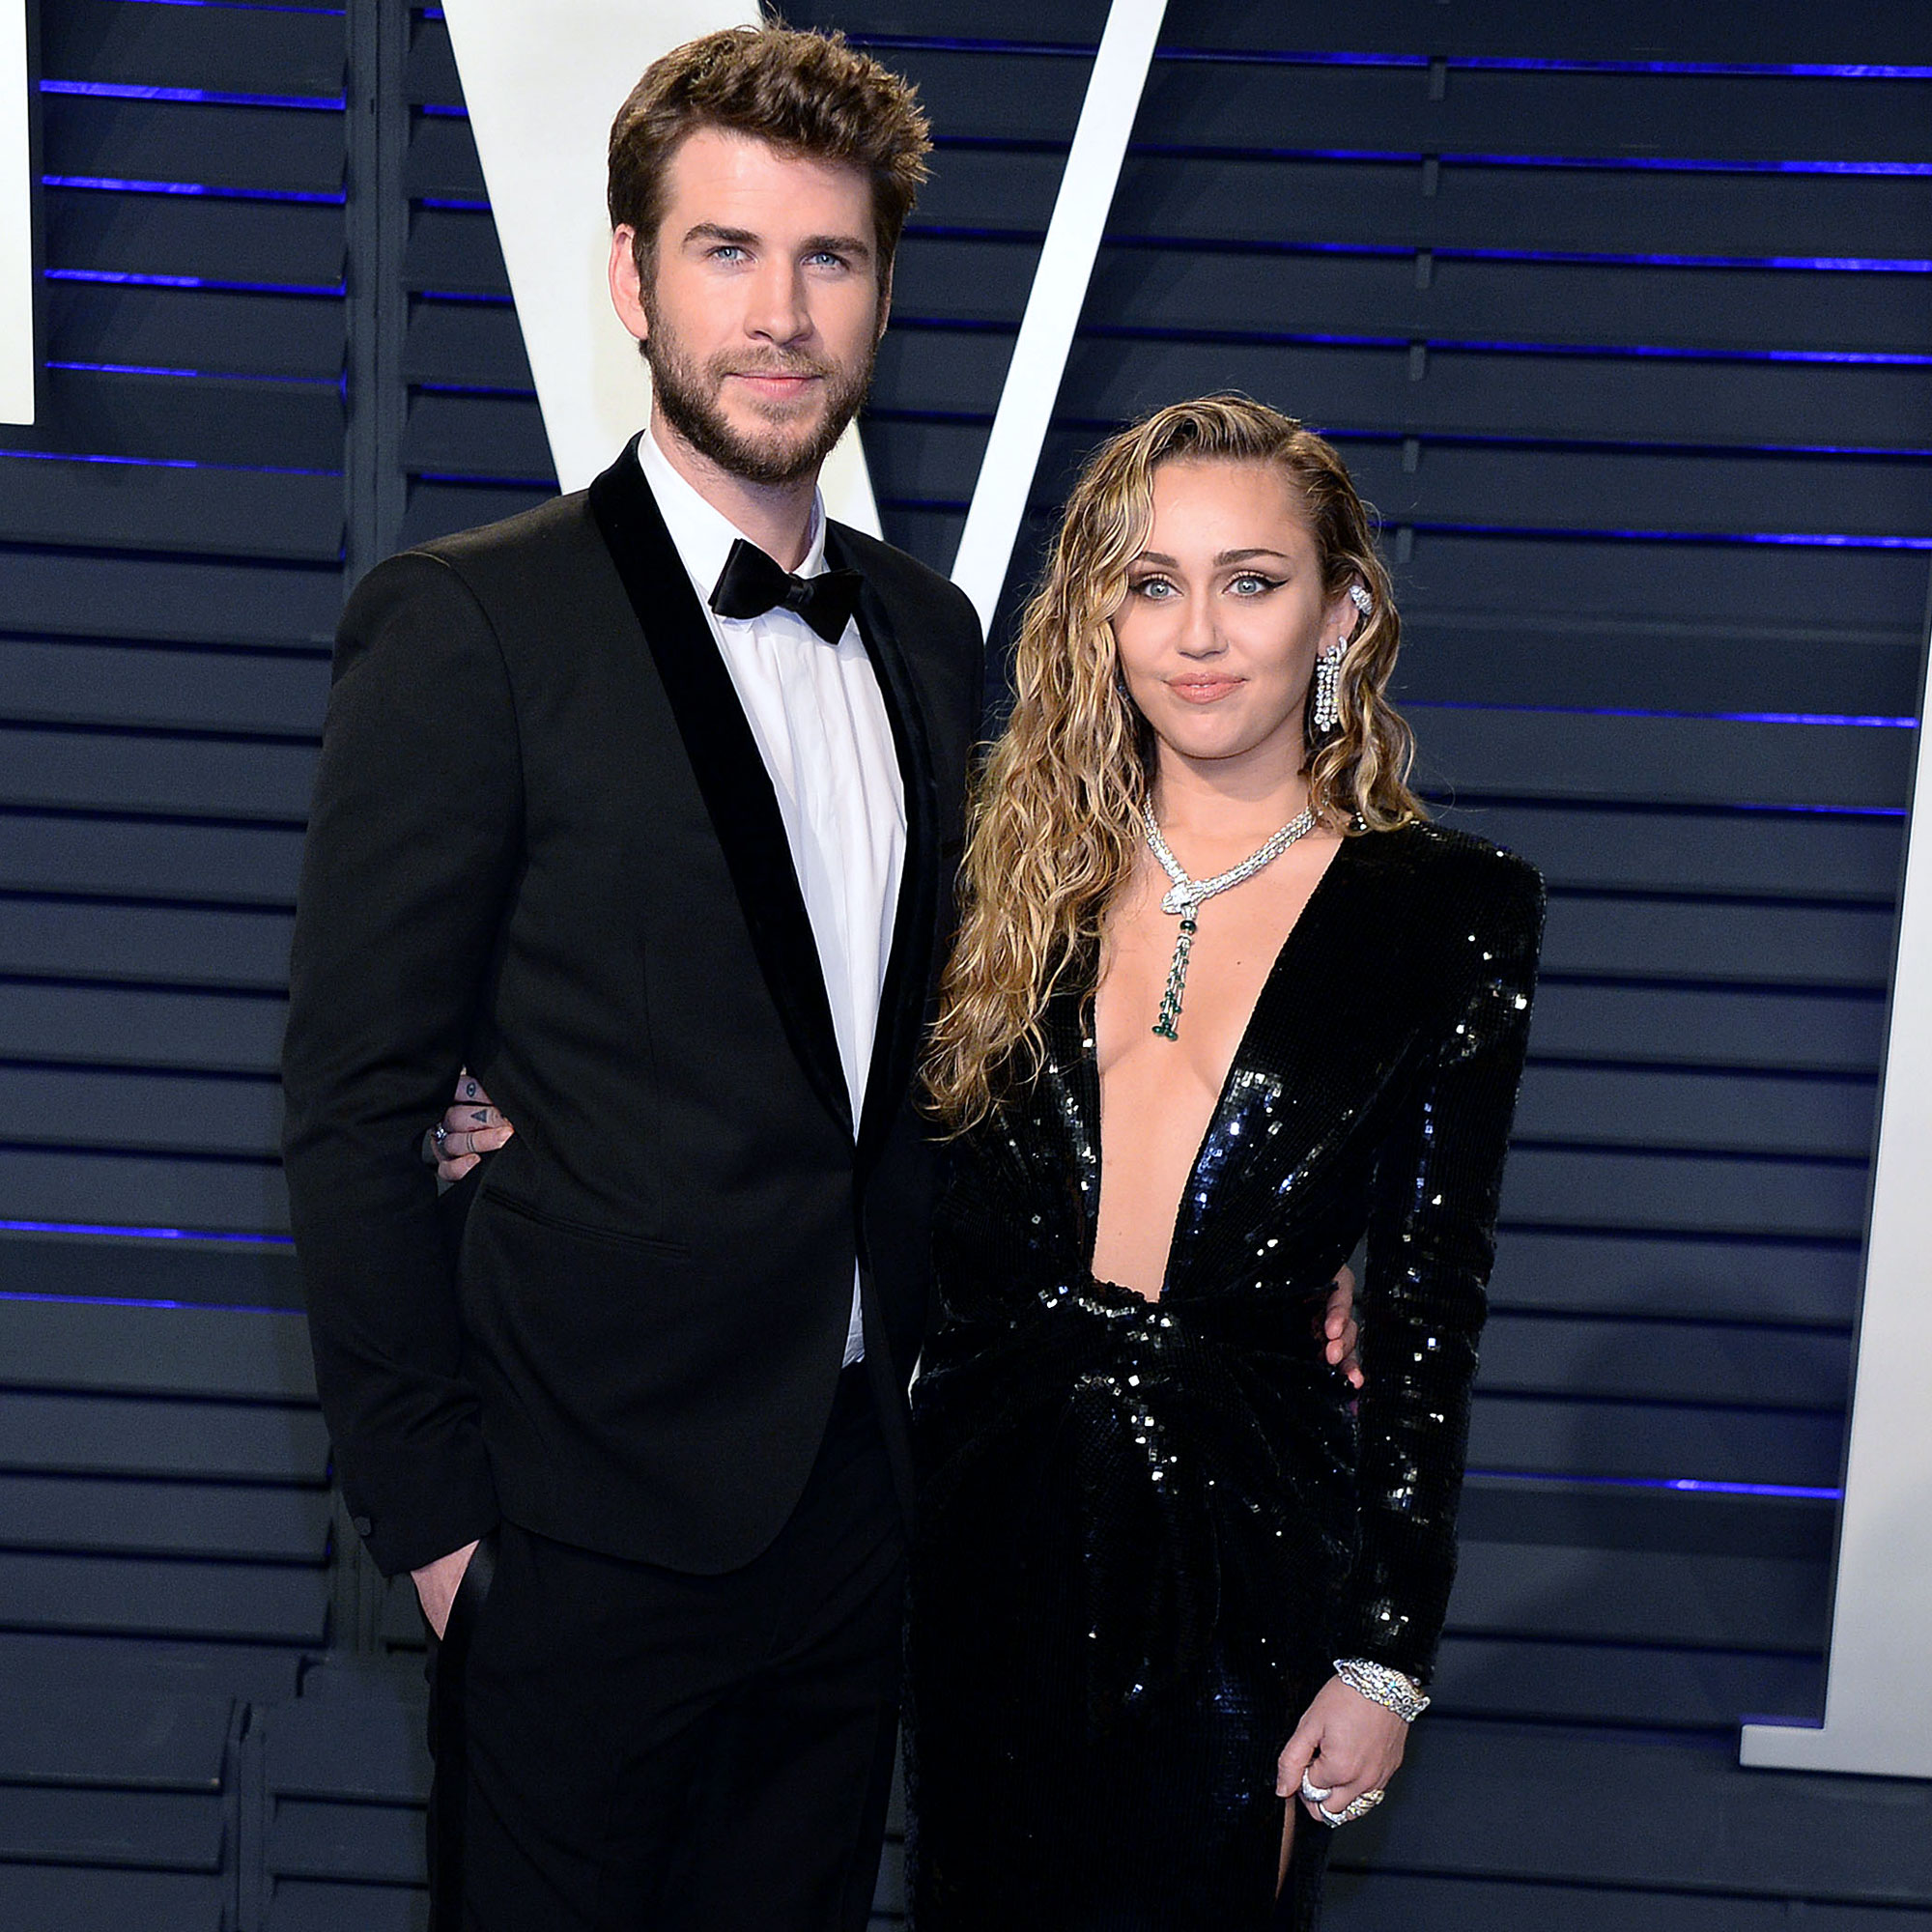 Liam Hemsworth Wishes Miley Cyrus 'Nothing But Happiness' After Split